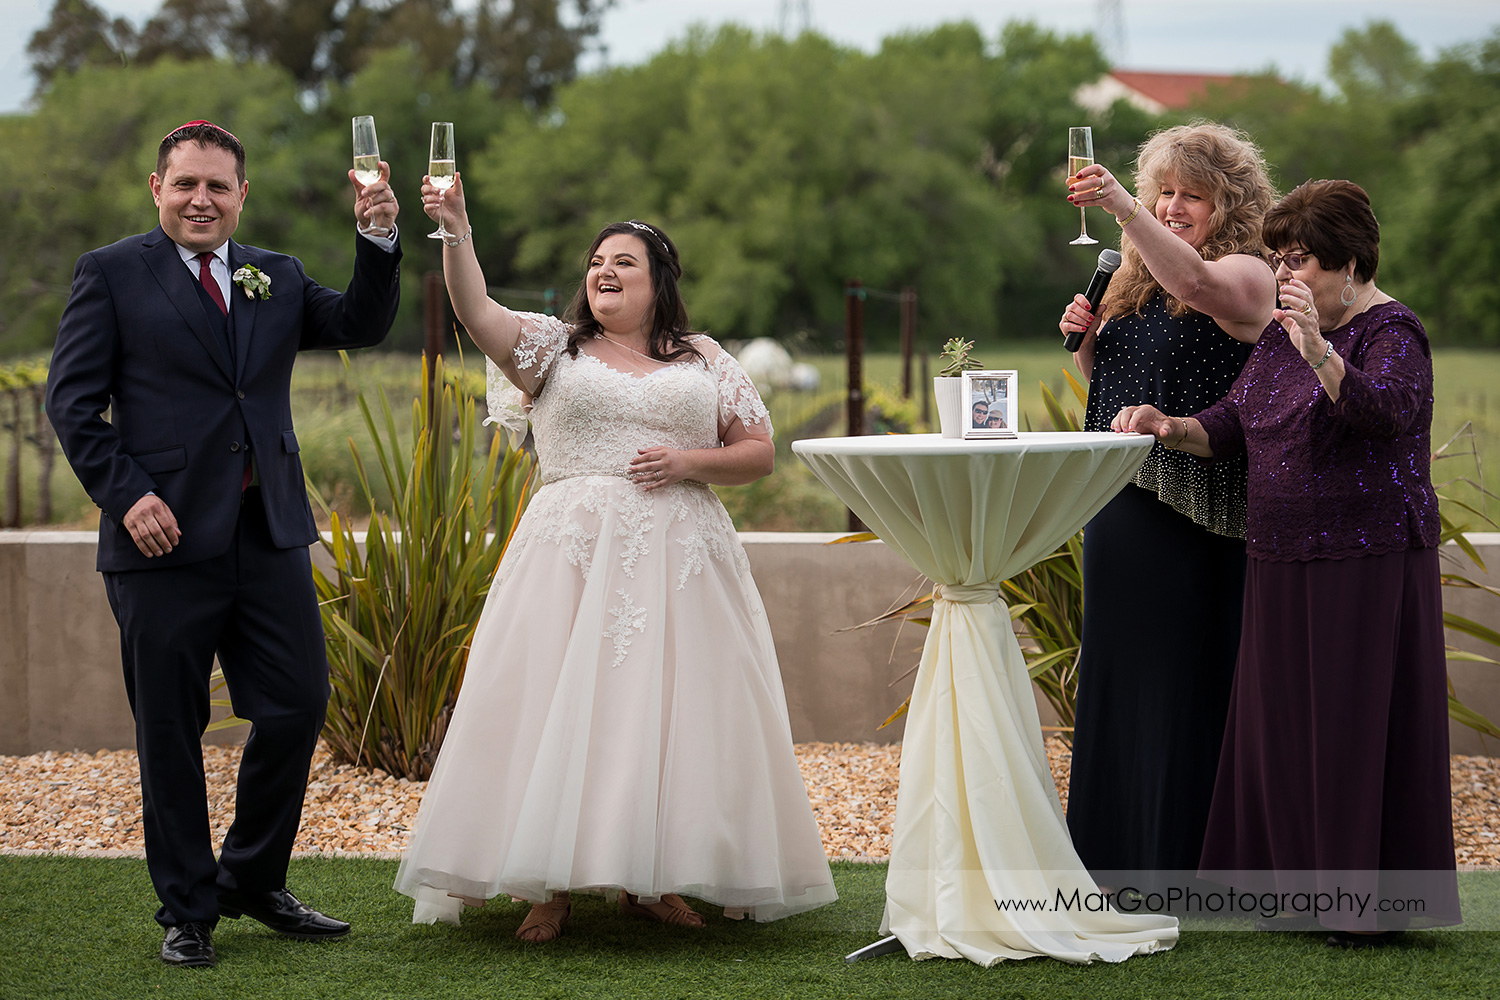 cocktail hour wedding toast at Livermore Garre Vineyard and Winery